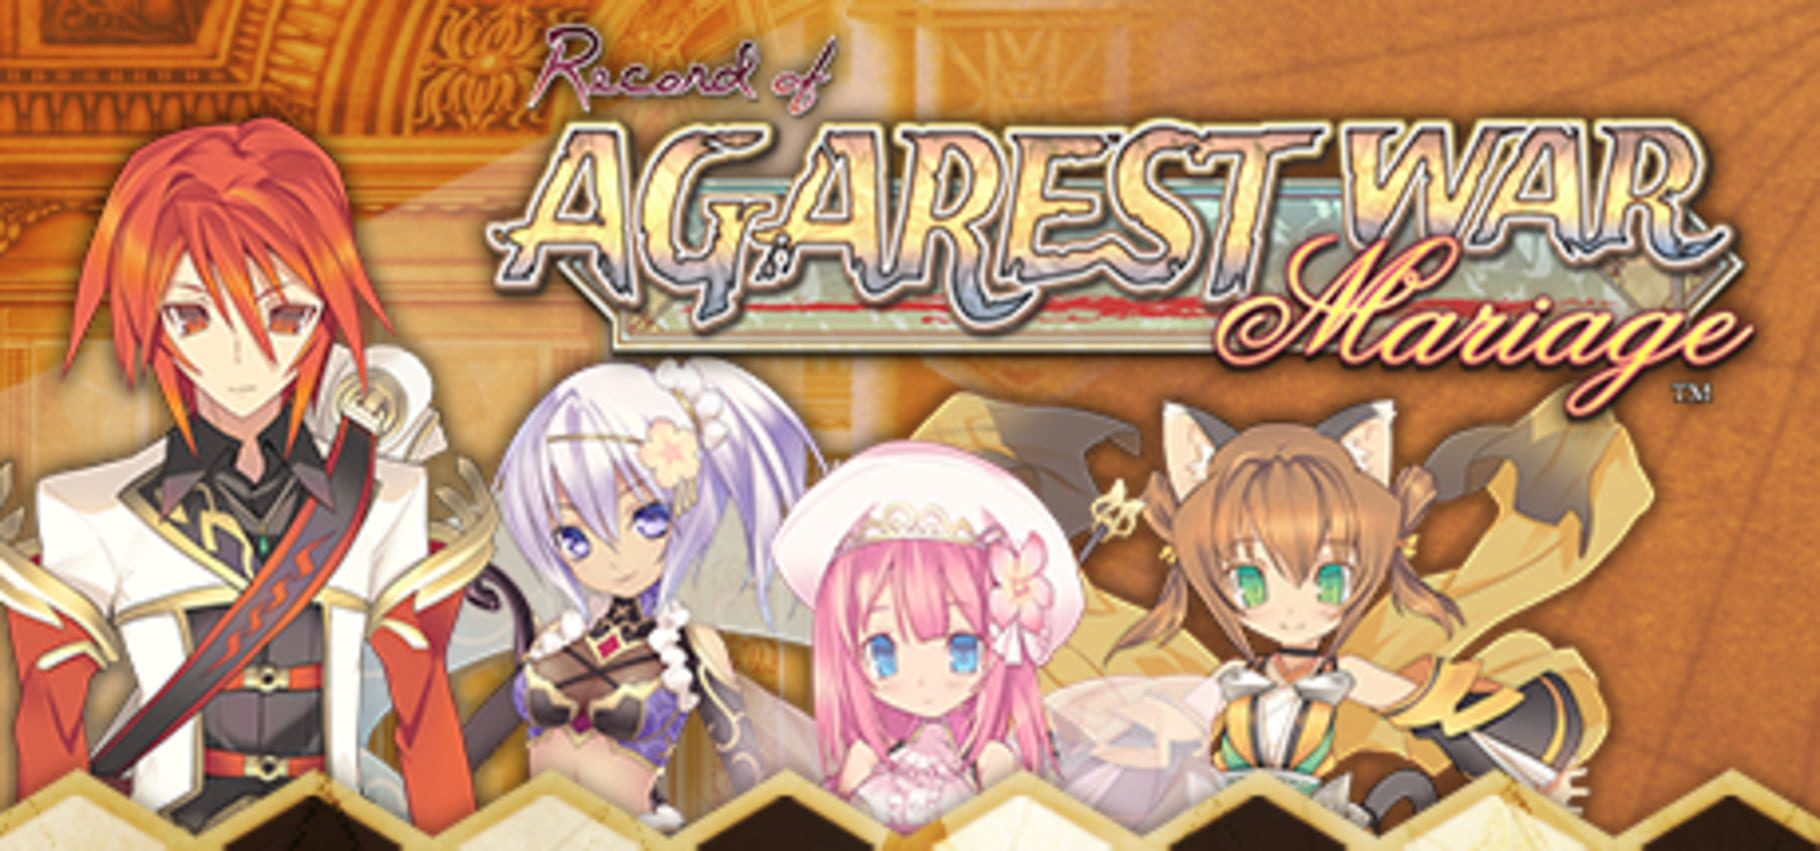 buy Record of Agarest War Mariage cd key for all platform